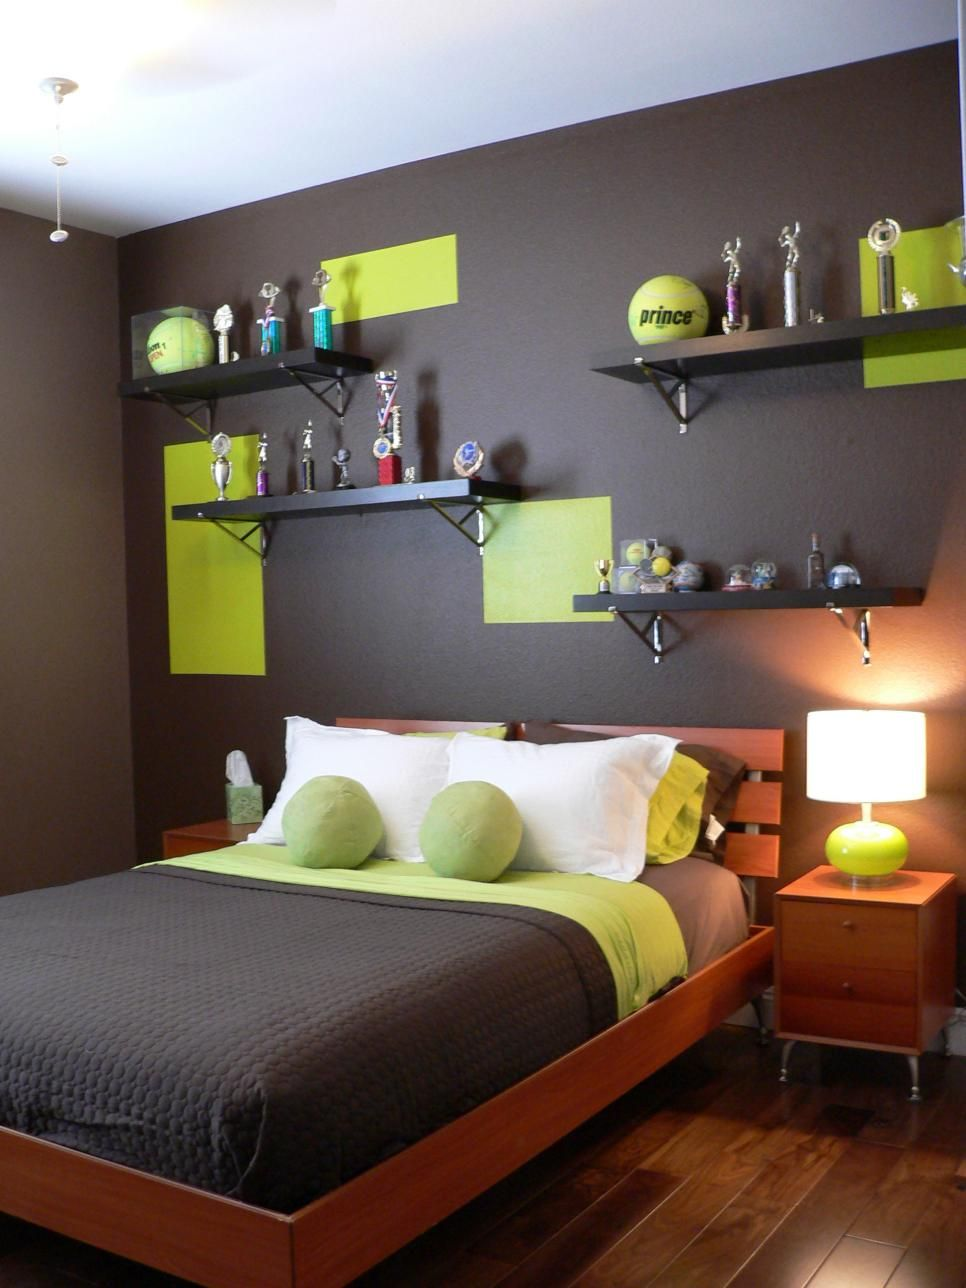 Tennis Anyone This Green And Brown Bedroom Was Designed By Diva